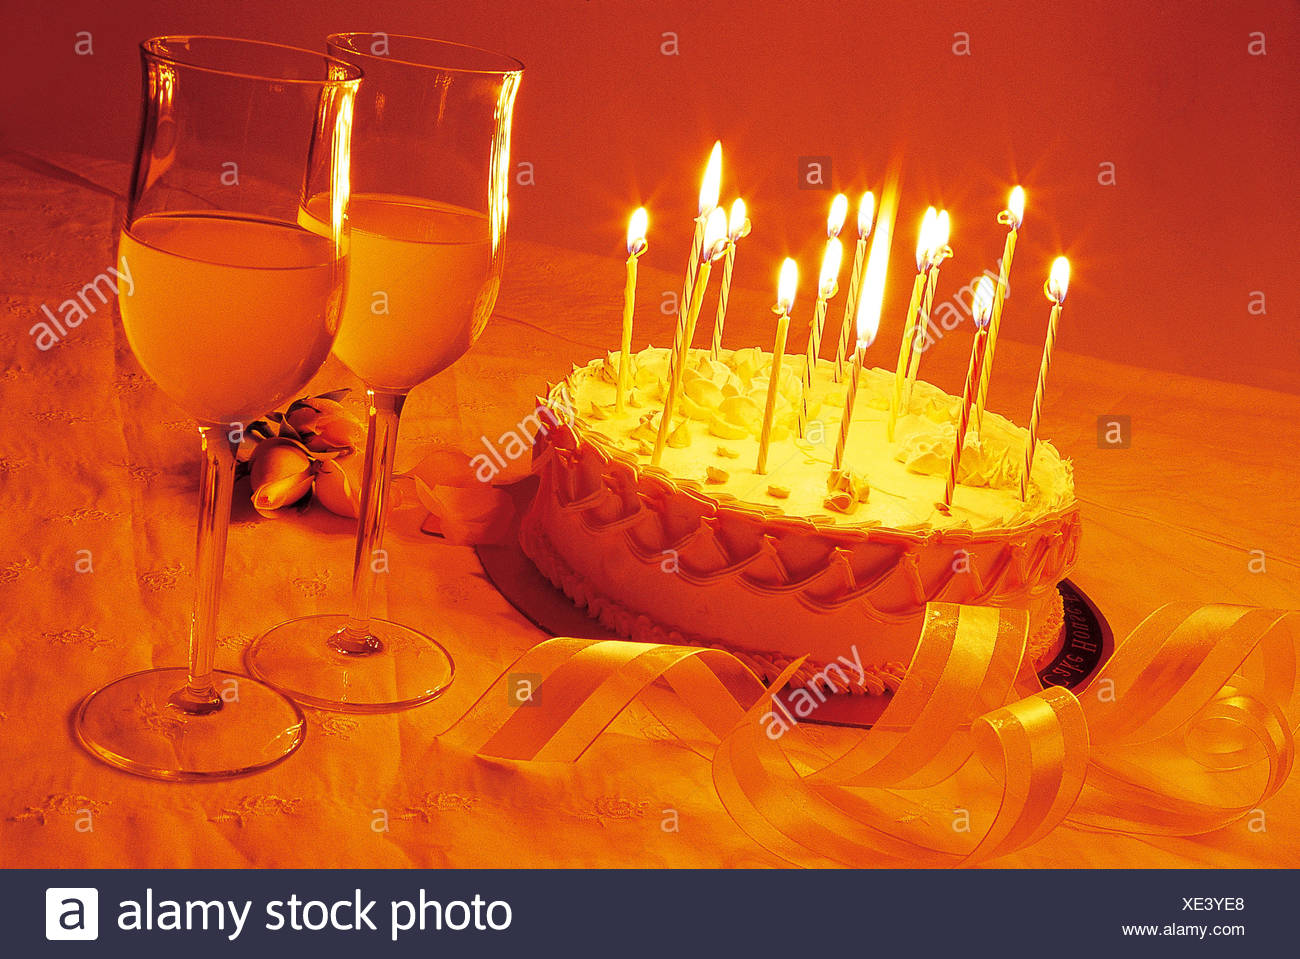 Birthday Cake And Wine Glasses On The Table Stock Photo 284058496